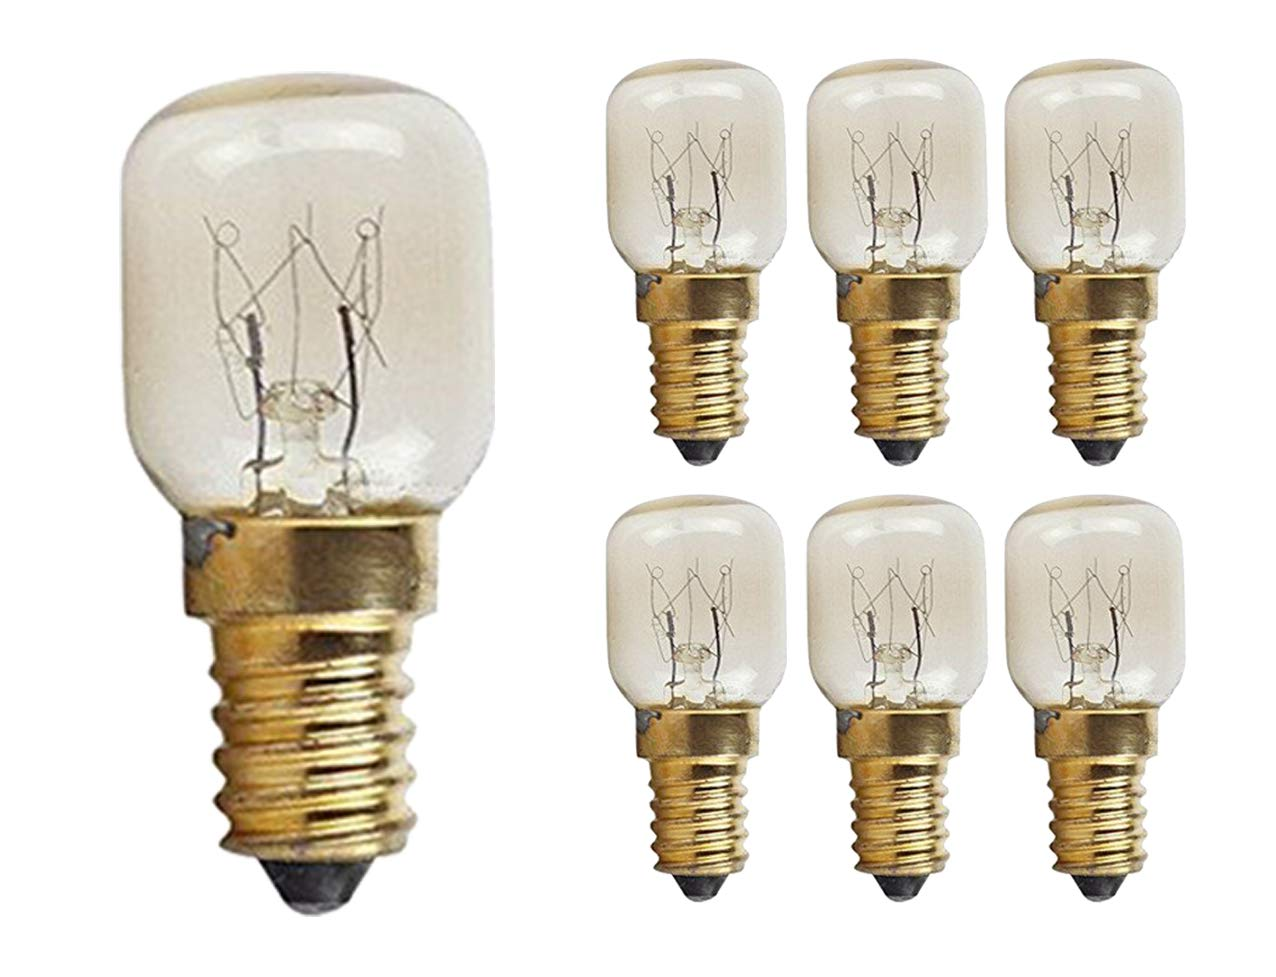 CTKcom 15W T22 E14 Base Oven Light Bulbs(6 Pack)- T22 Microwave Light Bulbs 120V Heat Resistant Bulbs 300